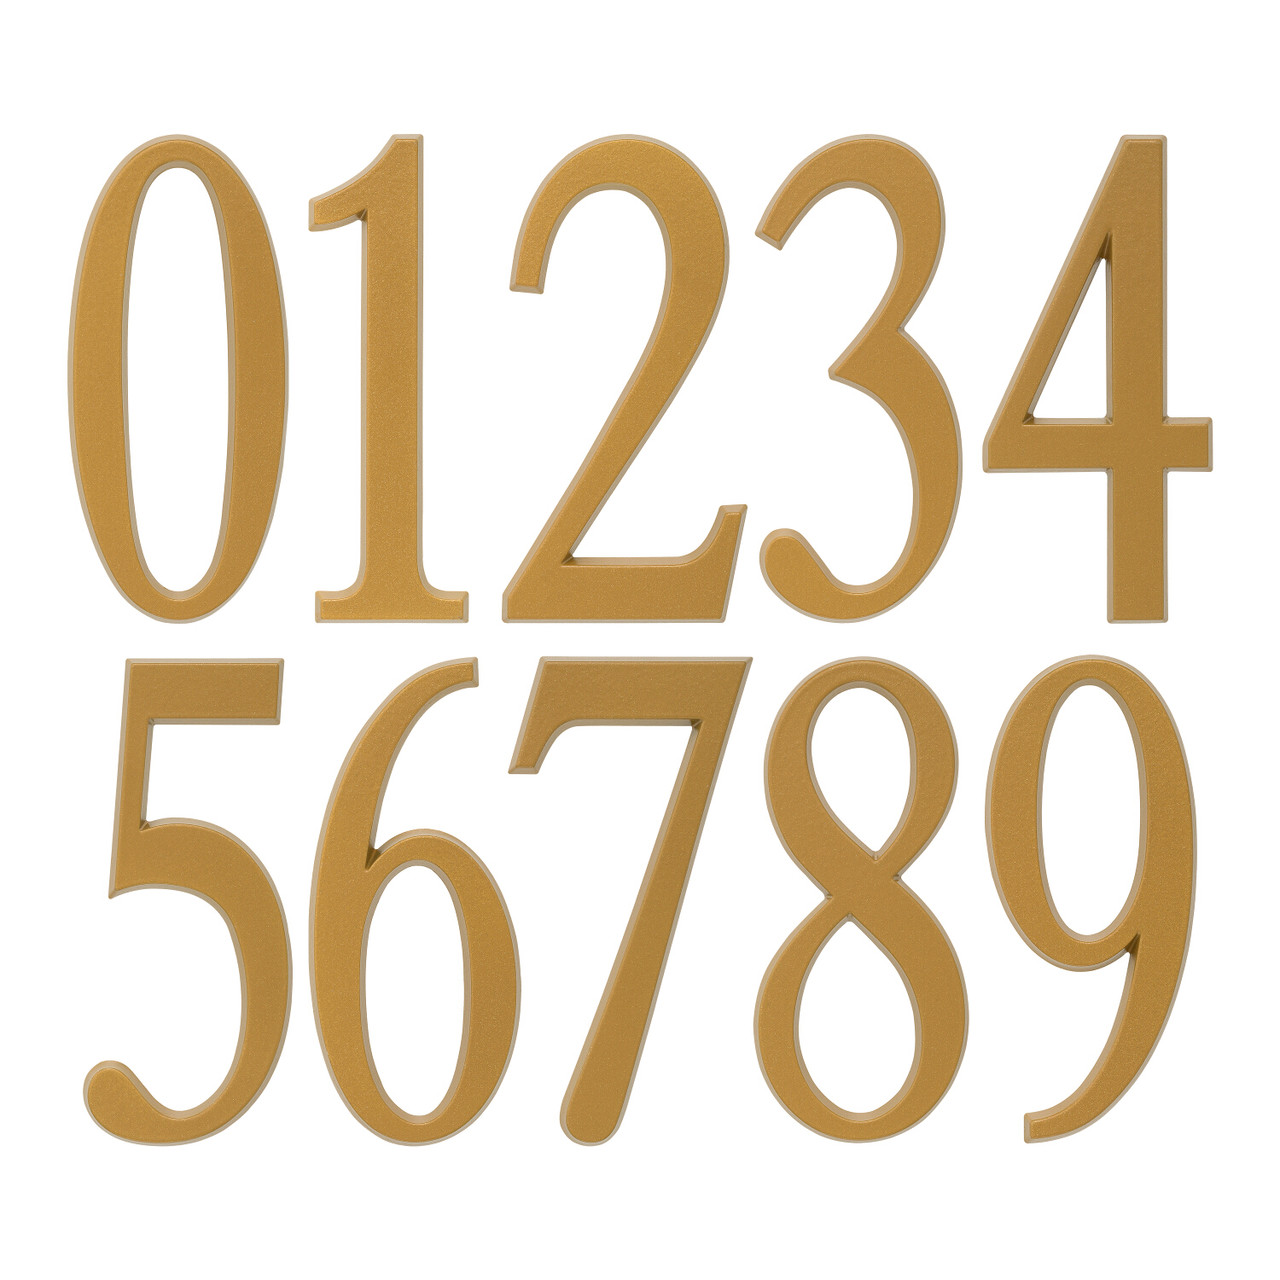 Adhesive House Numbers